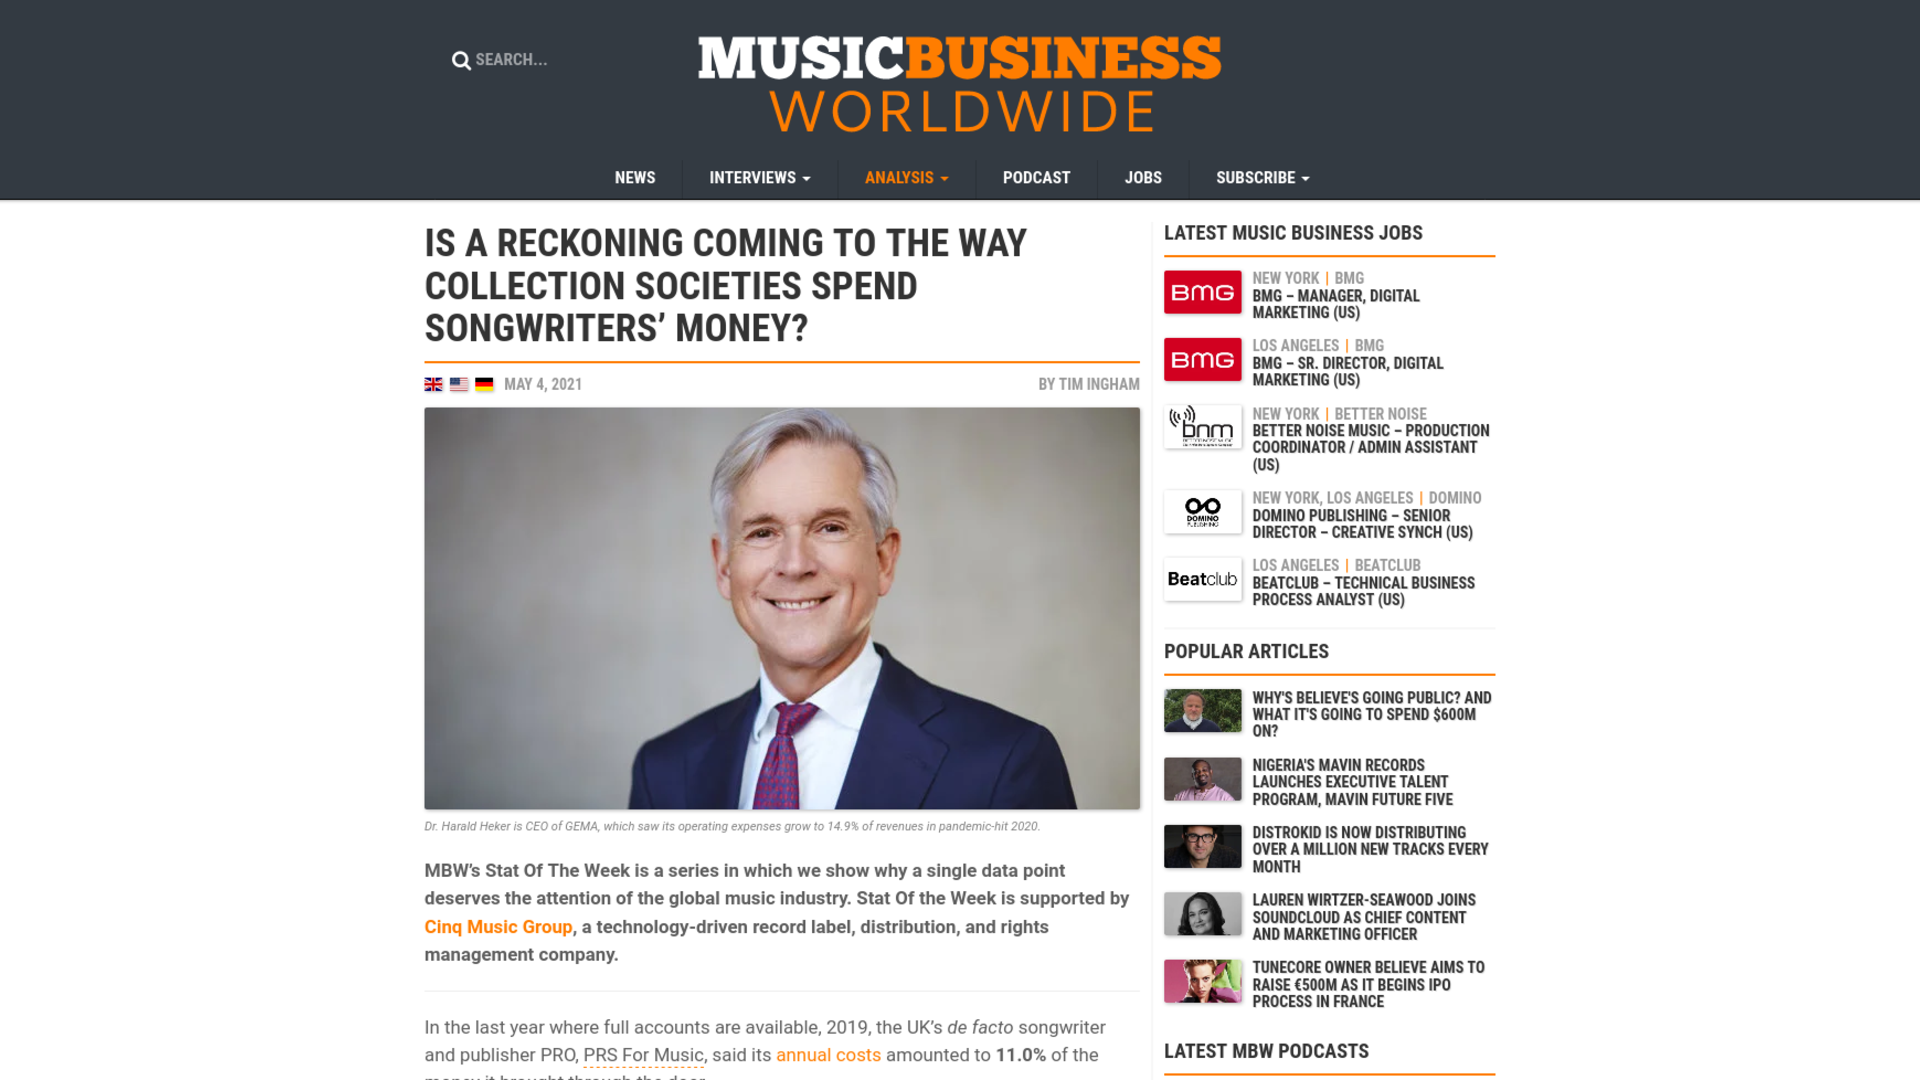 Fairness Rocks News Is a reckoning coming to the way collection societies spend songwriters' money?